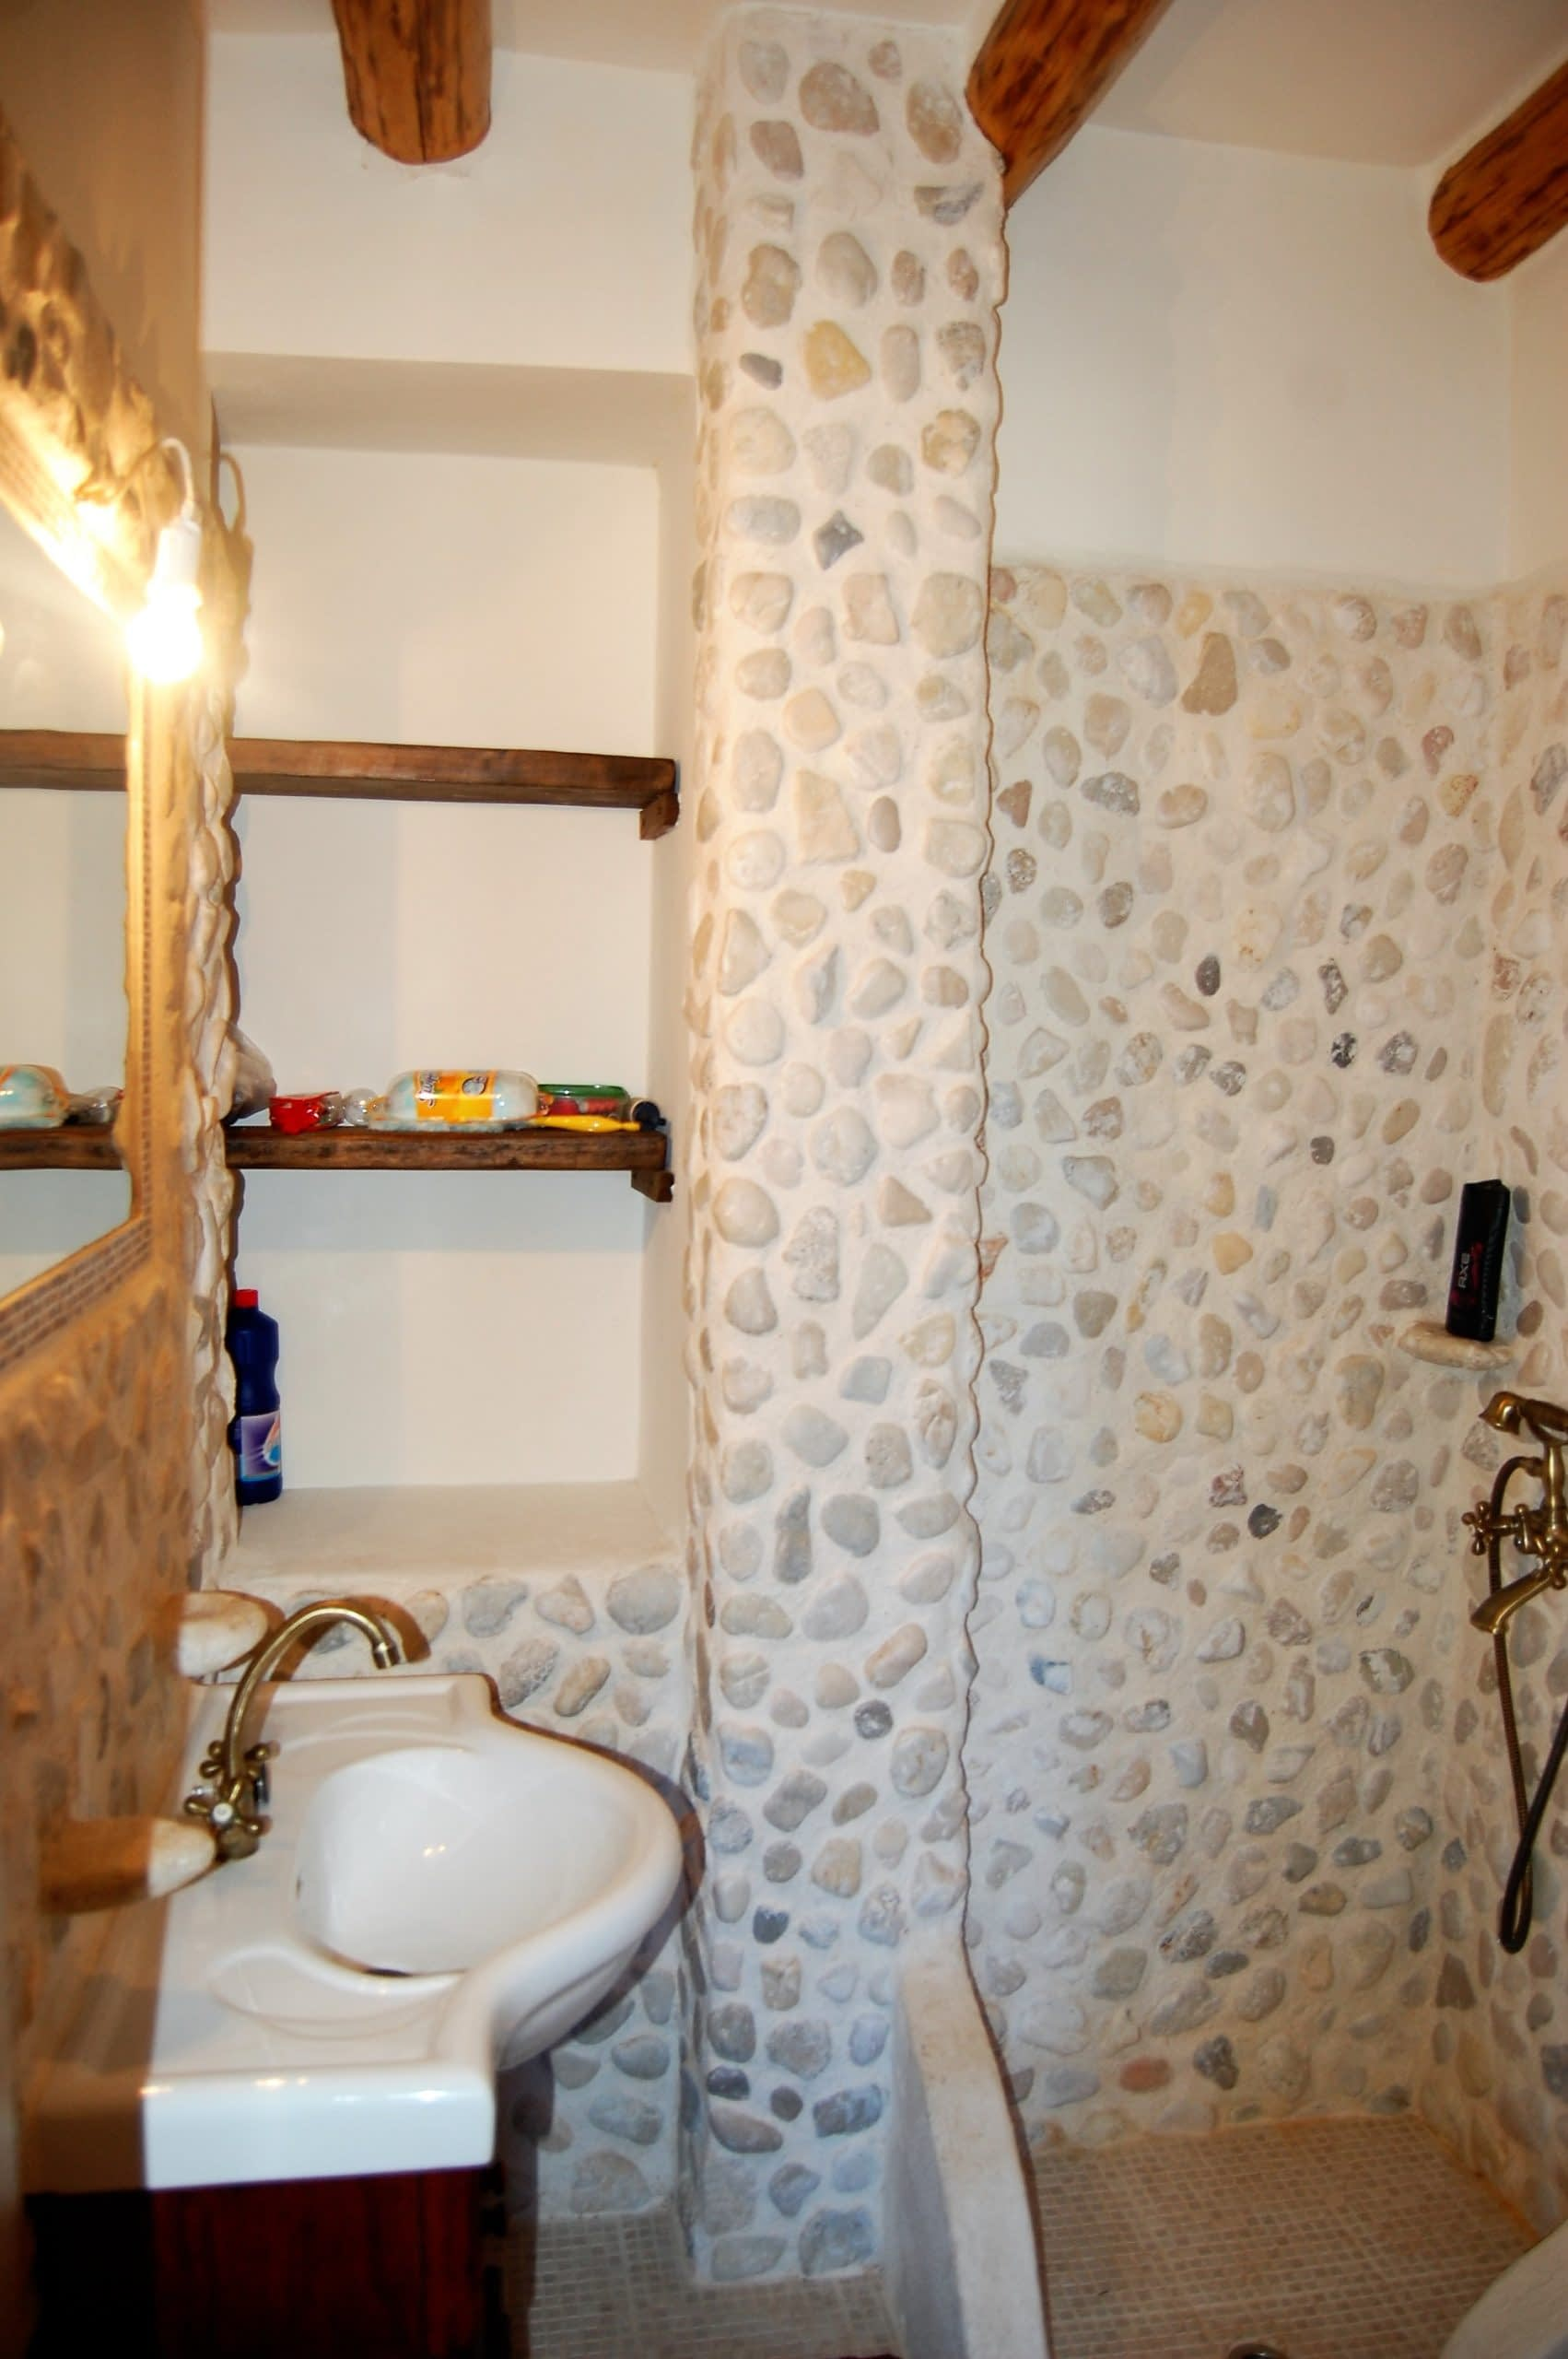 Decorative bathroom of stone house for rent Ithaca Greece